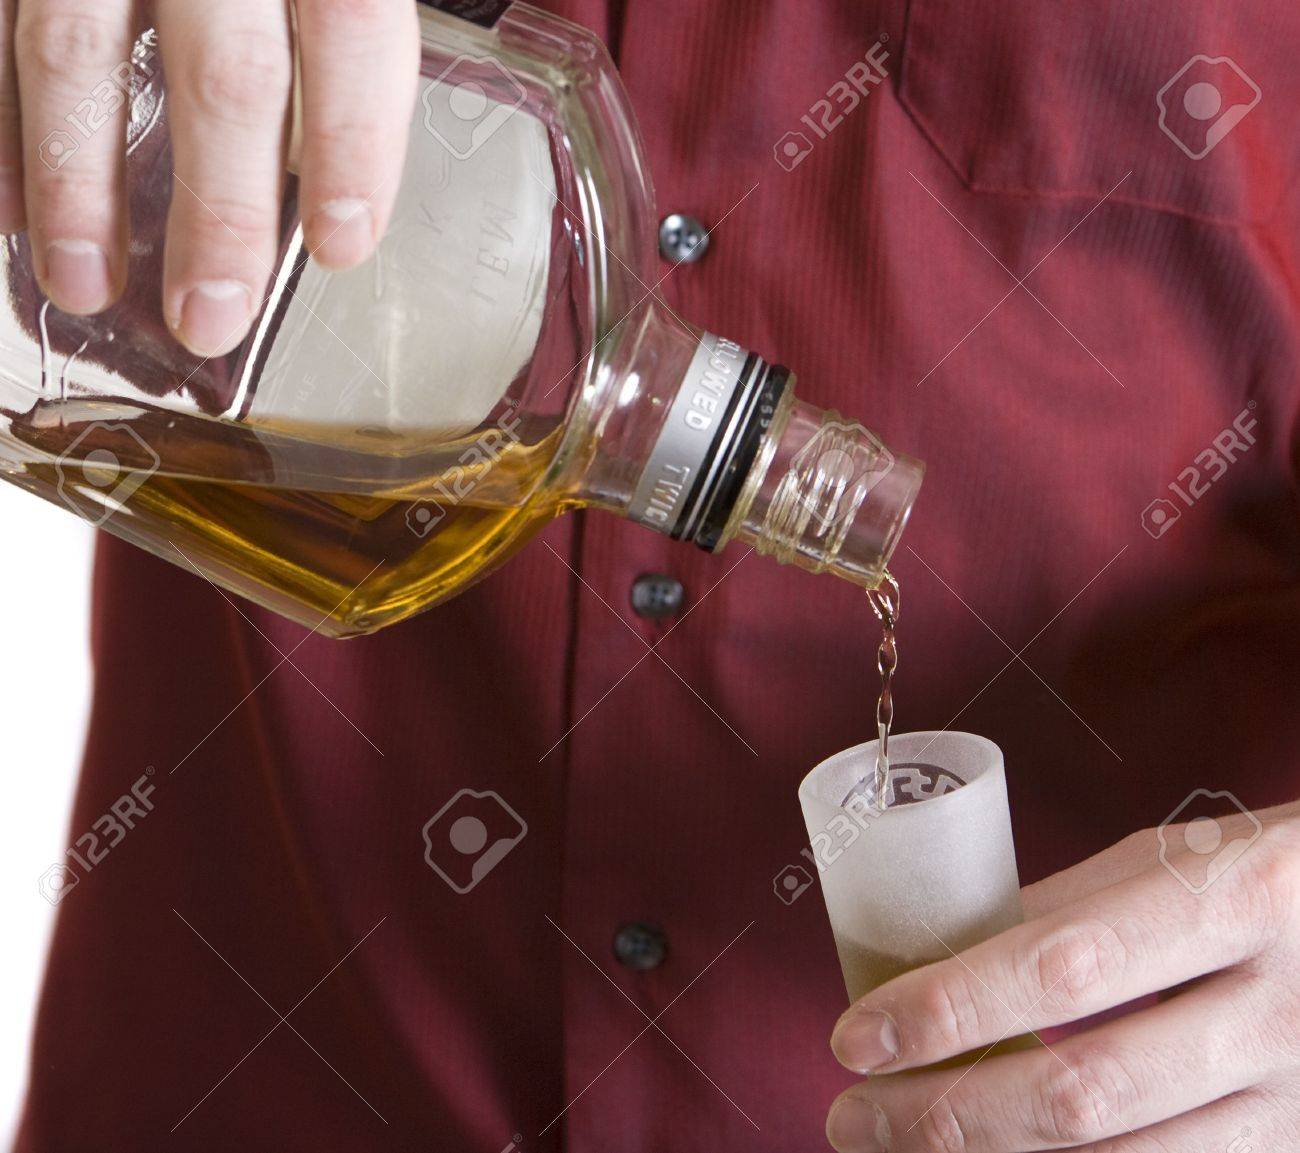 Man's hands pouring whiskey into a shot glass. Stock Photo - 4245687